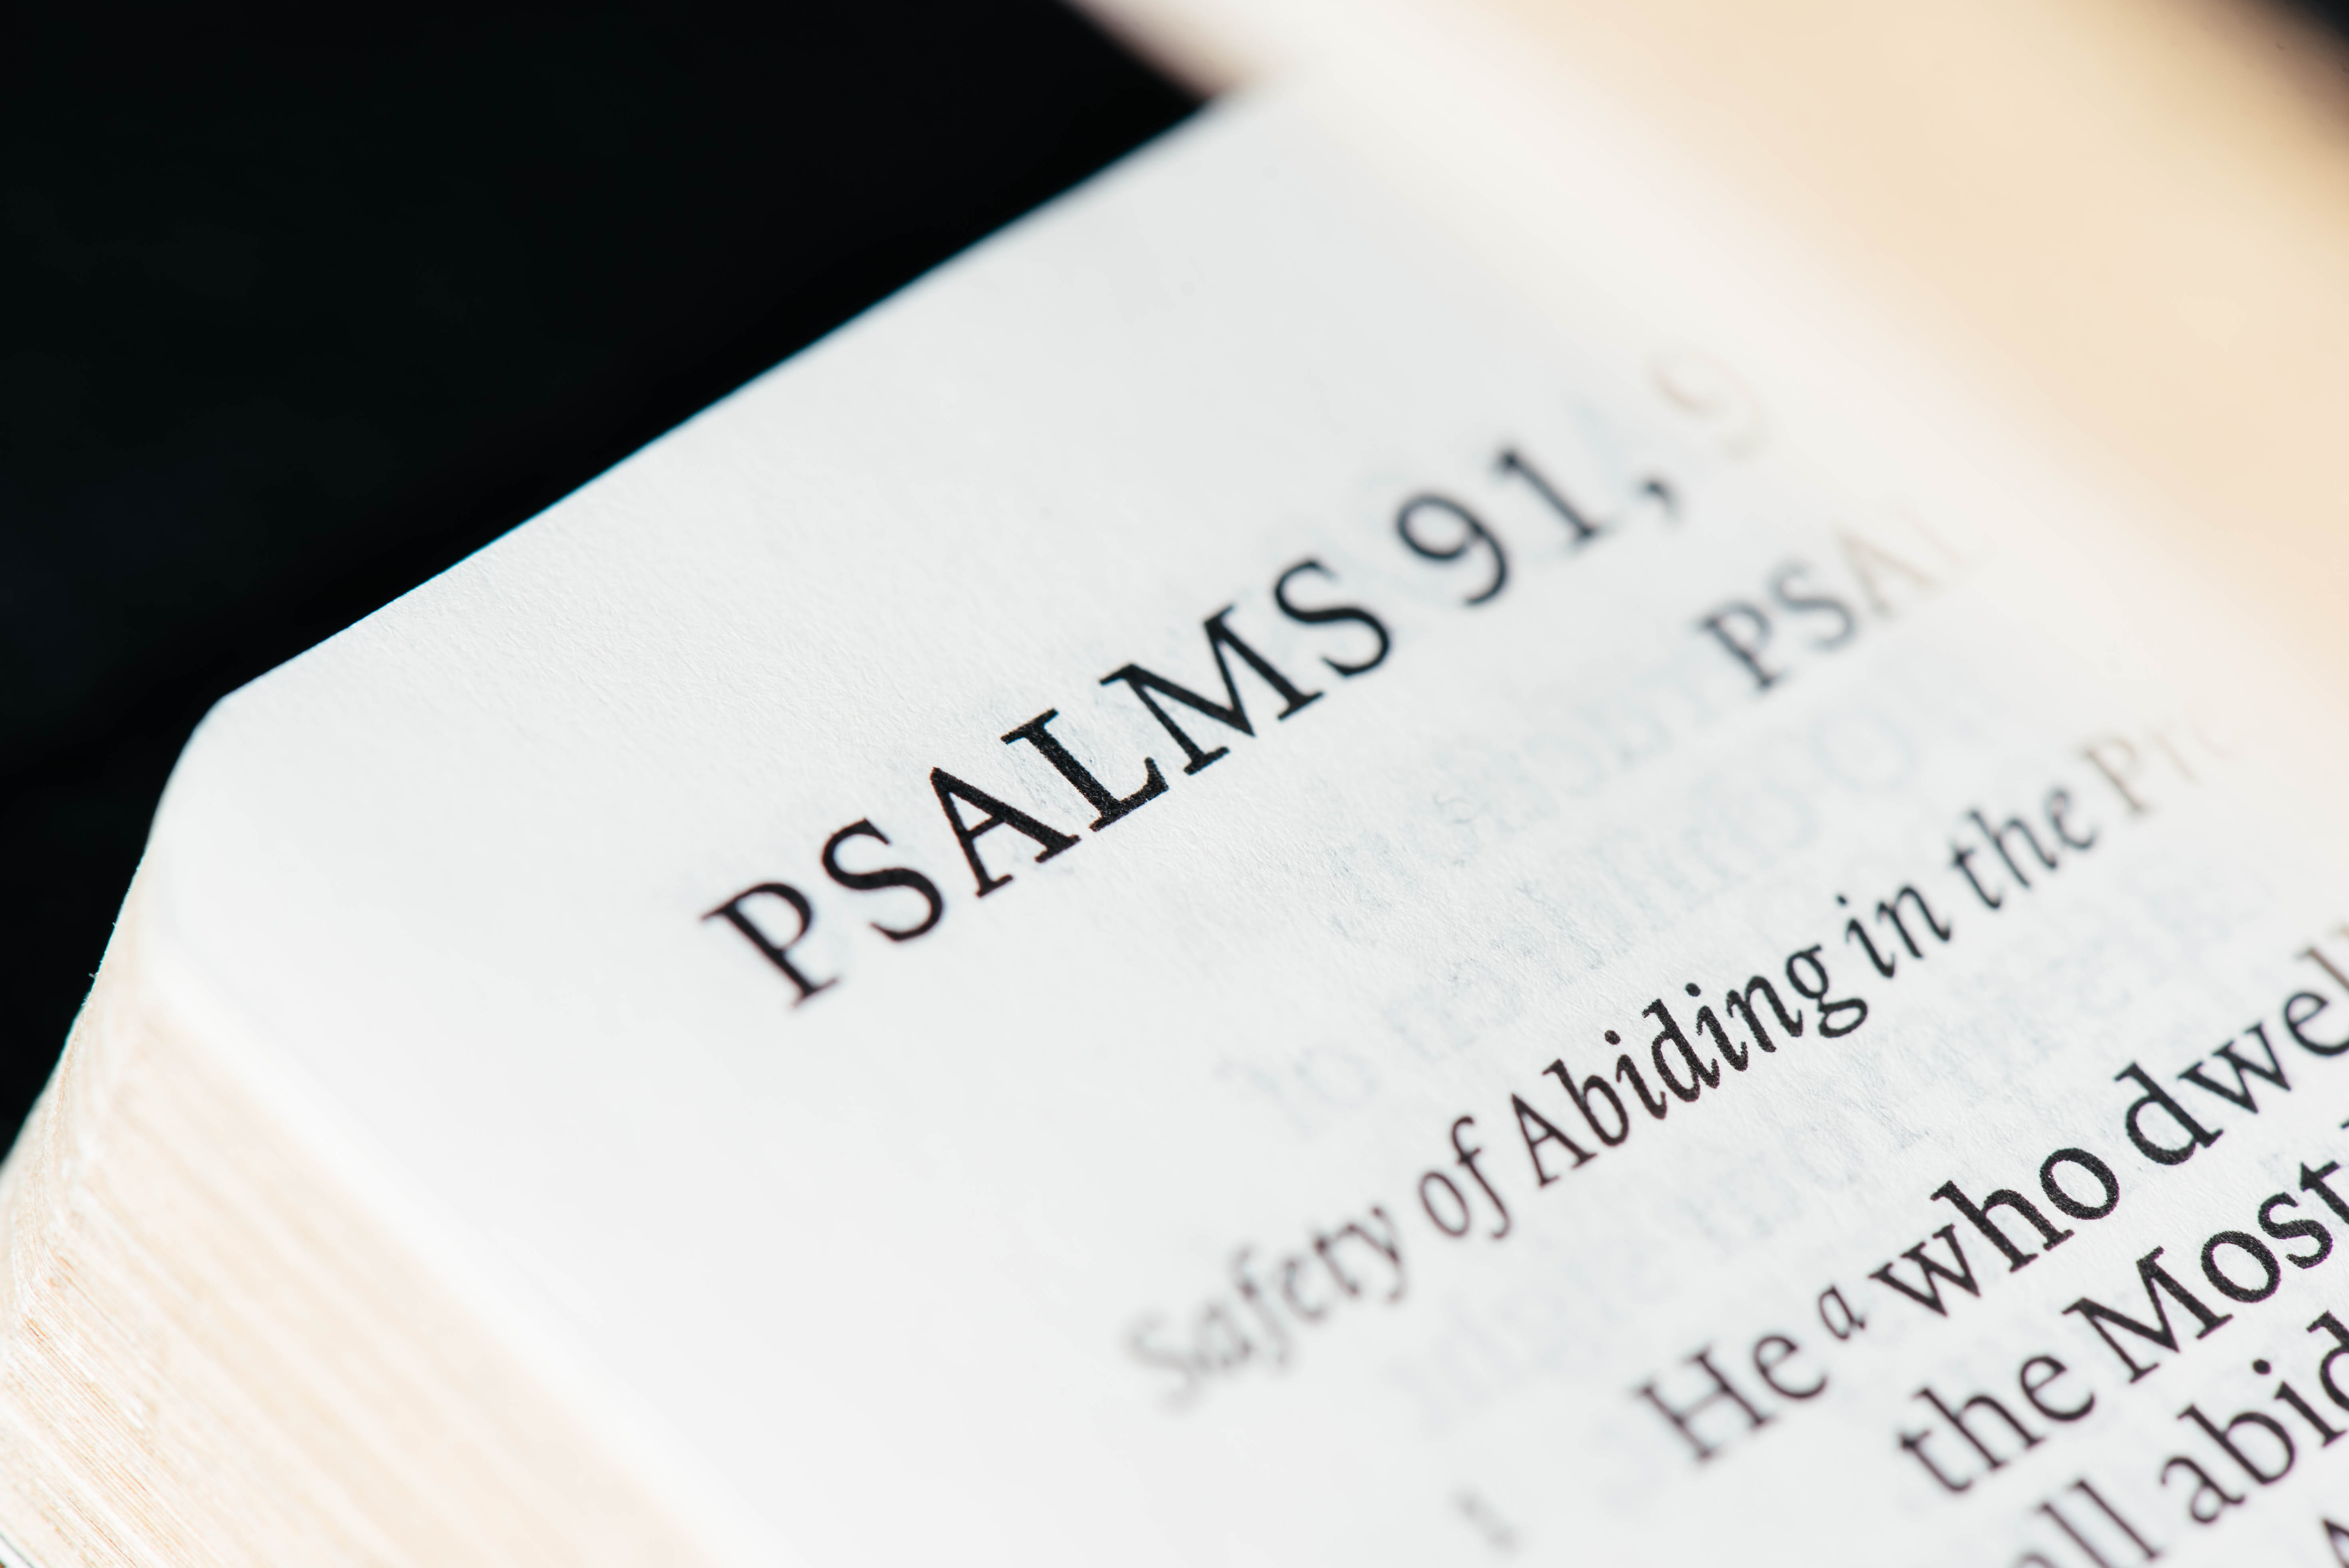 A macro shot of Psalms 91, a religious text.